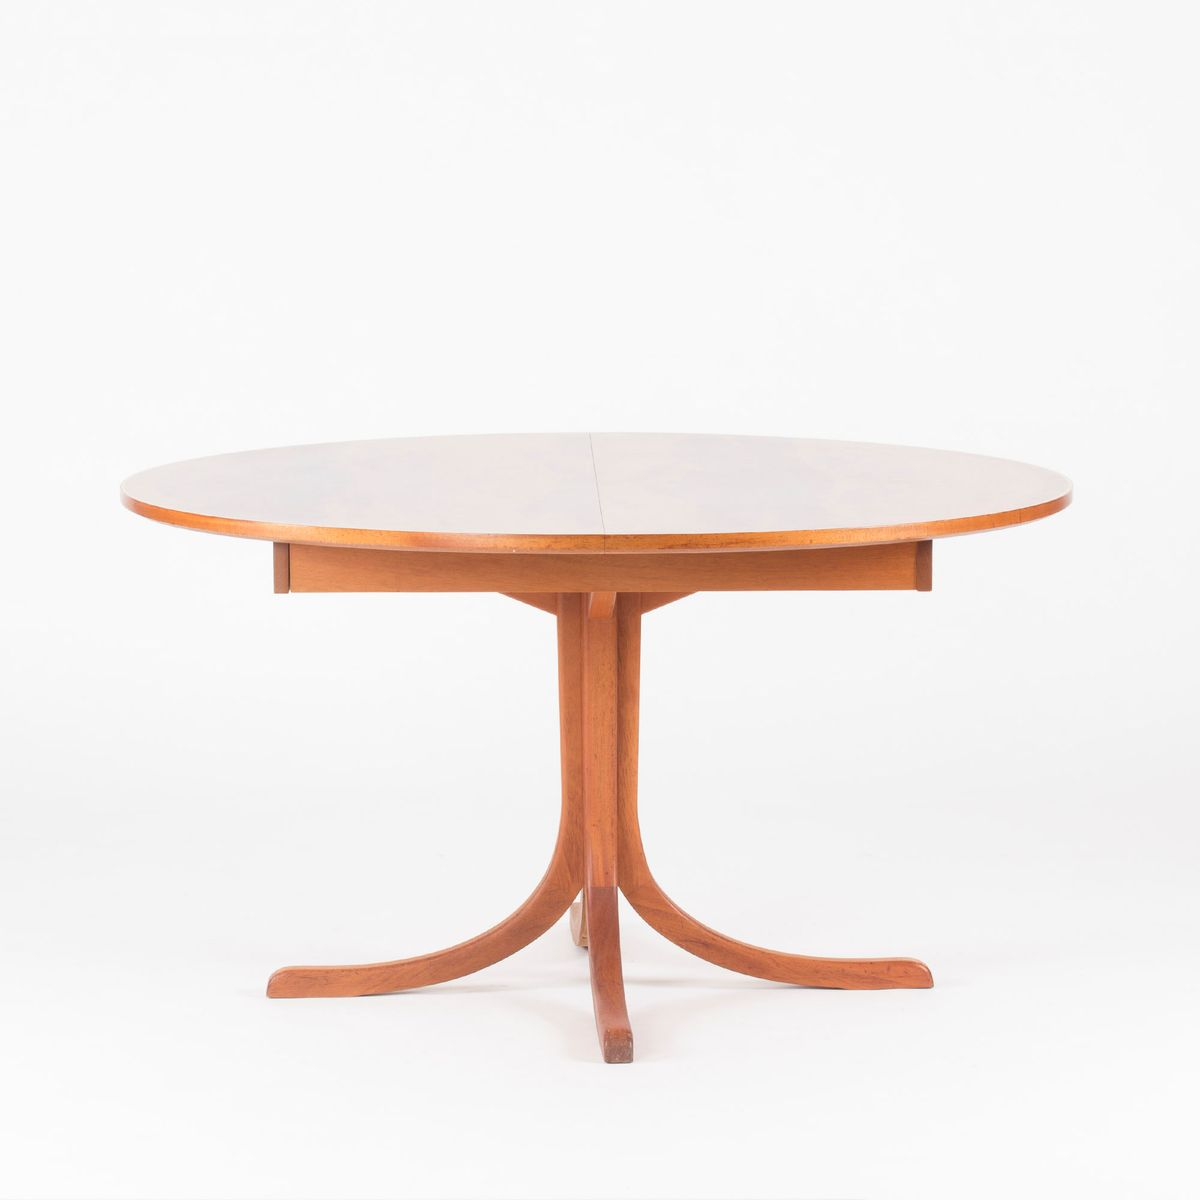 Extendable mahogany dining table by josef frank for for Mahogany dining table